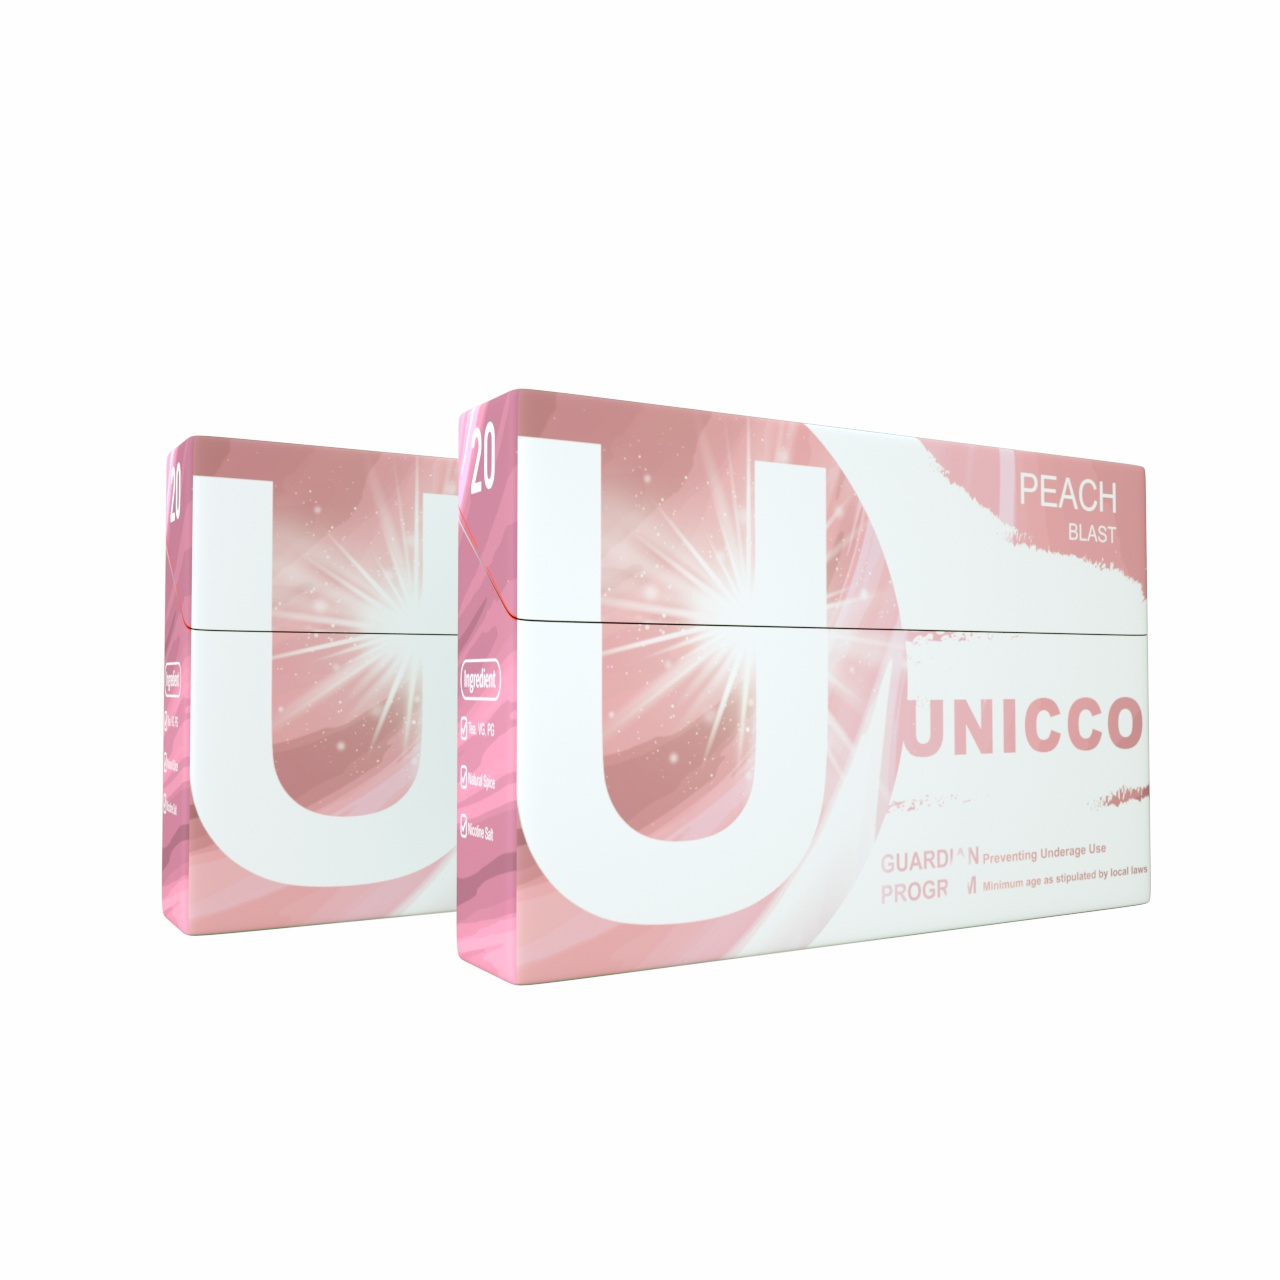 UNICCO-HERBAL HEAT STICKS-CIGARETTE ALTERNATIVE-PEACH-WITH CAPSULE